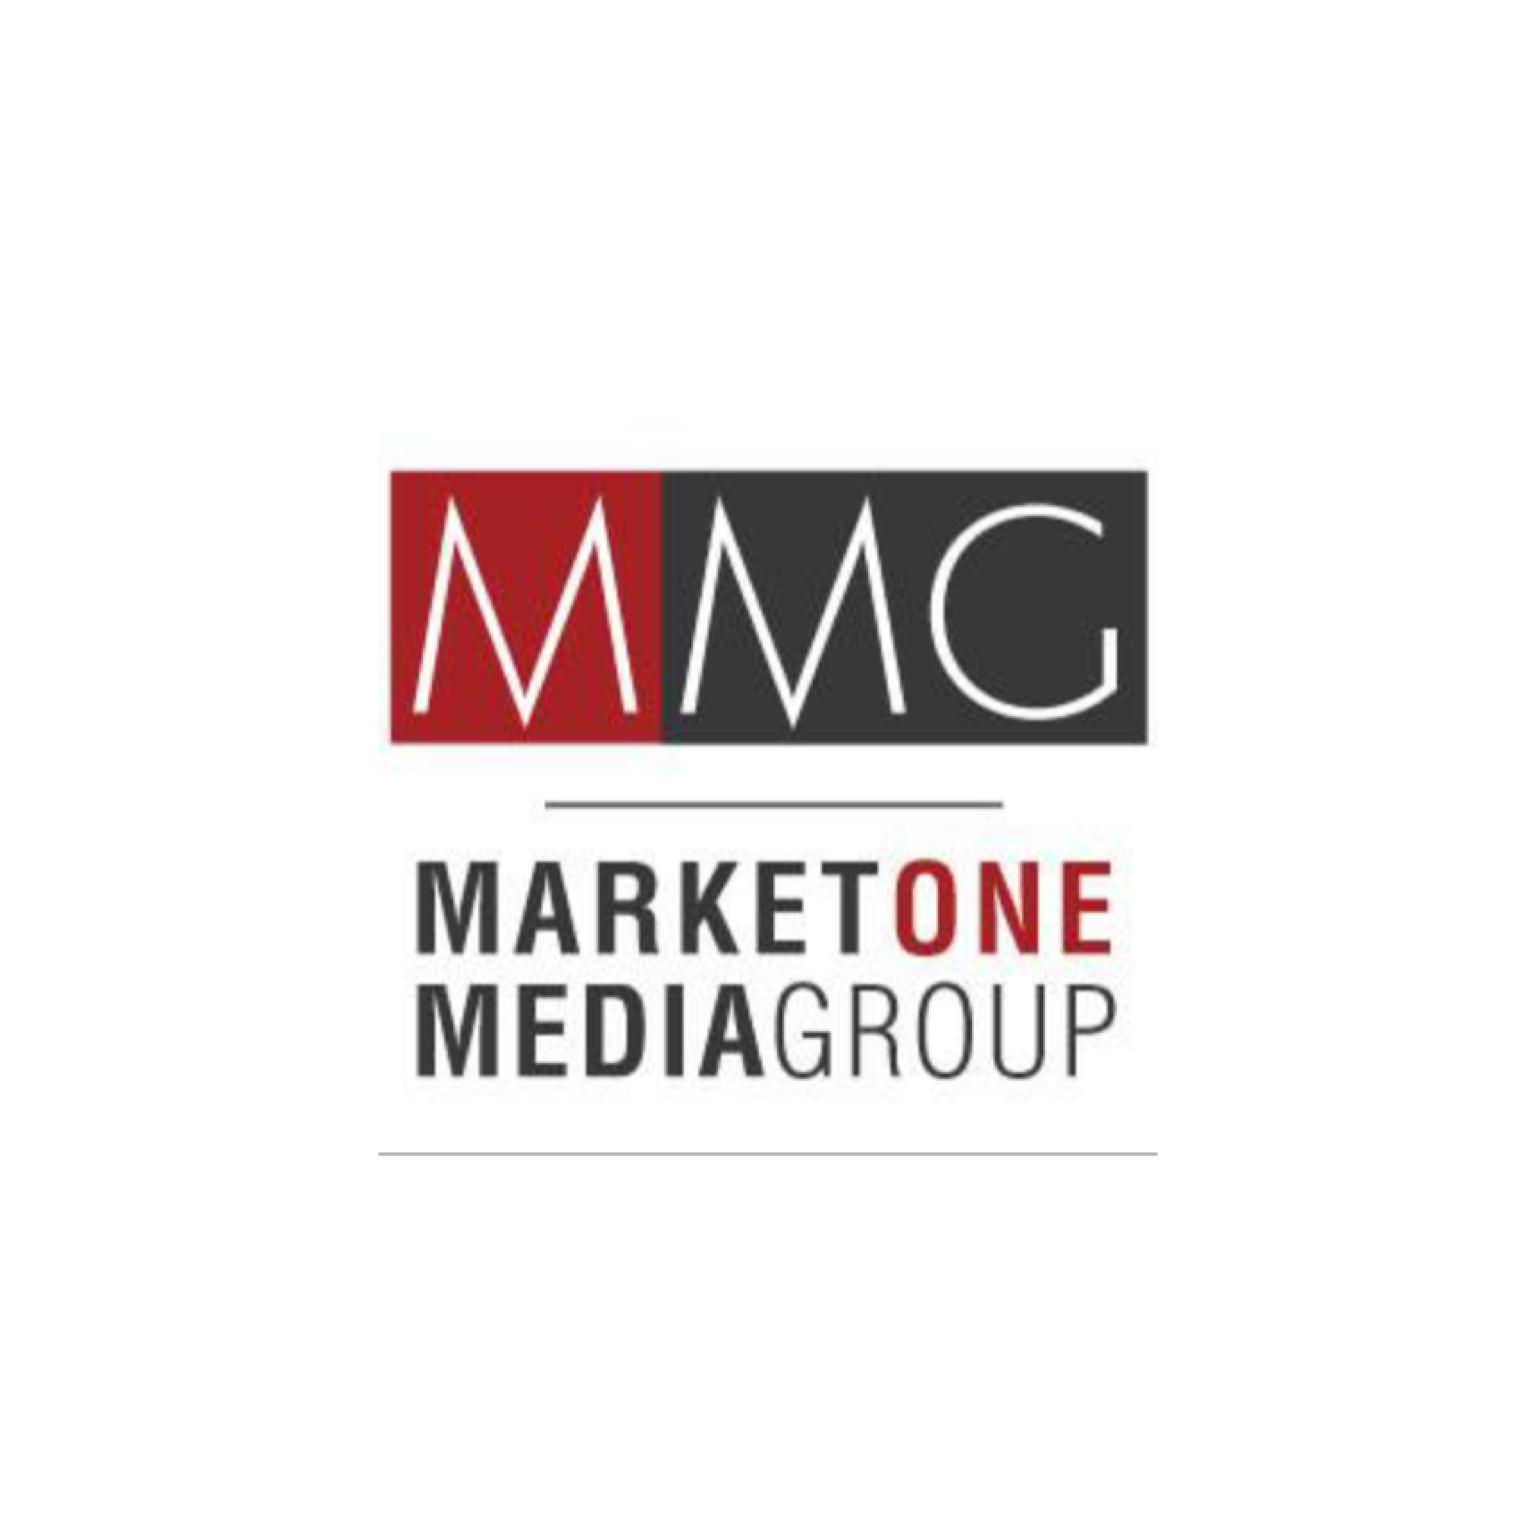 Market One Media Group (Currently Working Here)      • Clientsocial media campaigns focusing on brand awareness through PPC campaigns and engagement with influencers. • Manage weekly e-mail newsletter service and continuous growth of subscribers. • SEO for company and clients. • ManageGoogle AdWords and YouTube campaigns.